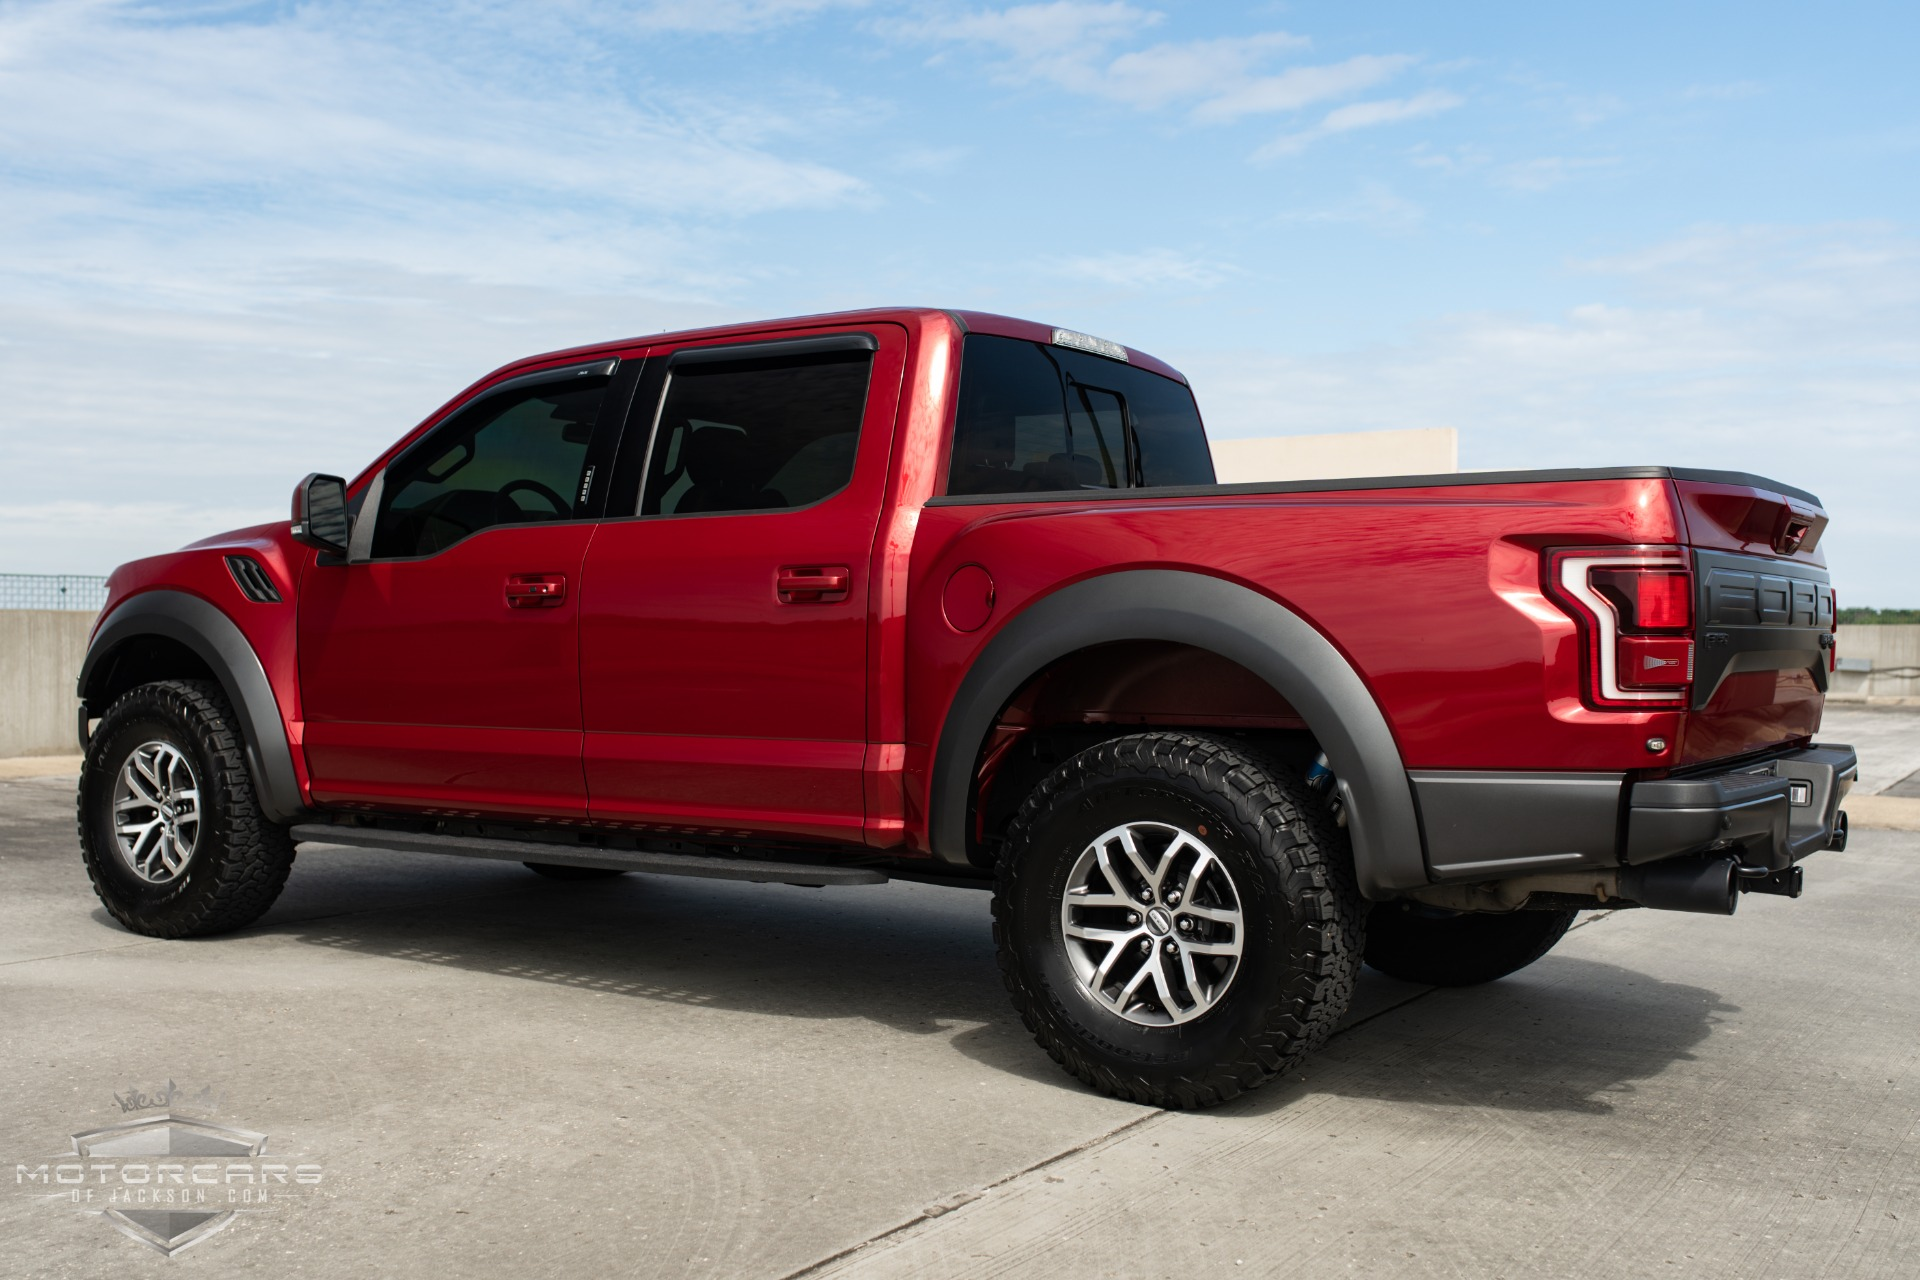 Used-2018-Ford-F-150-Raptor-Jackson-MS